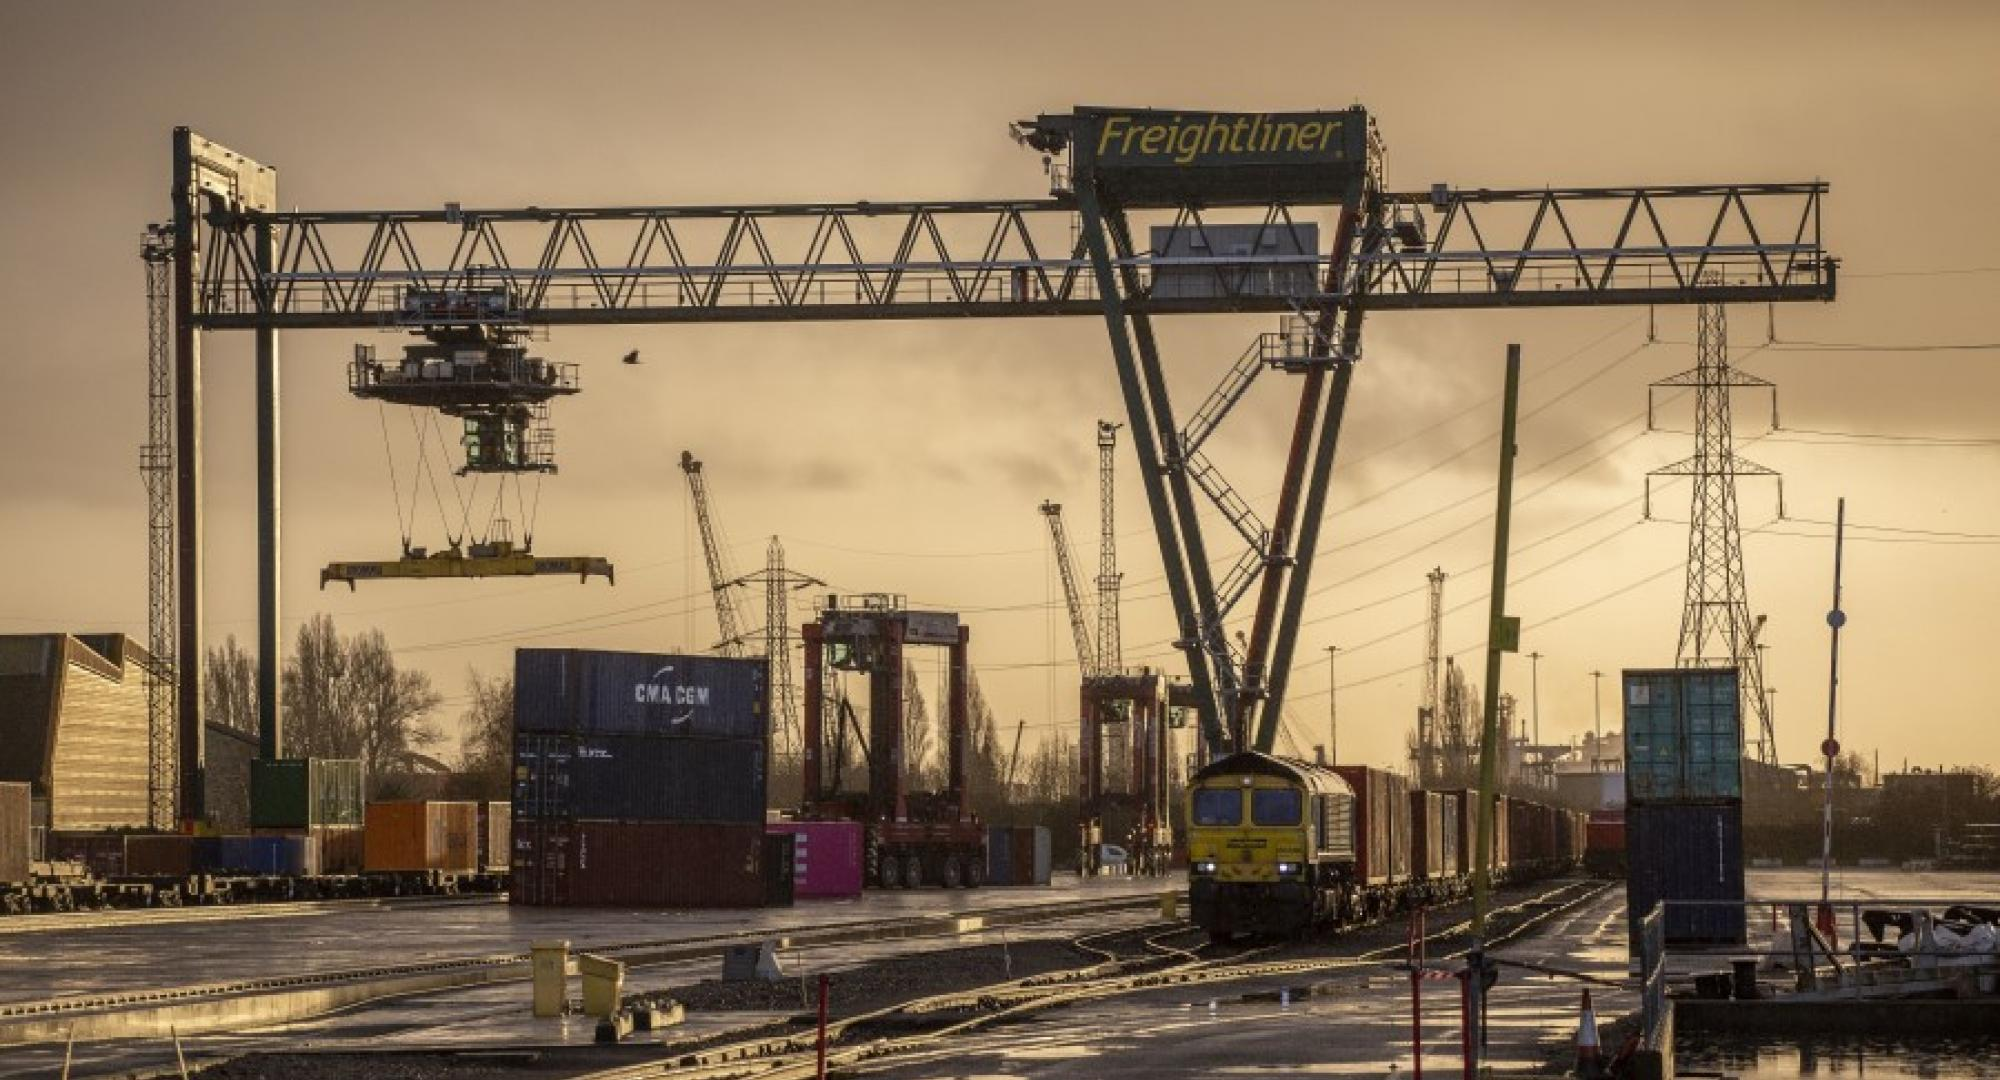 Major £17m Southampton Freight Train Lengthening project complete